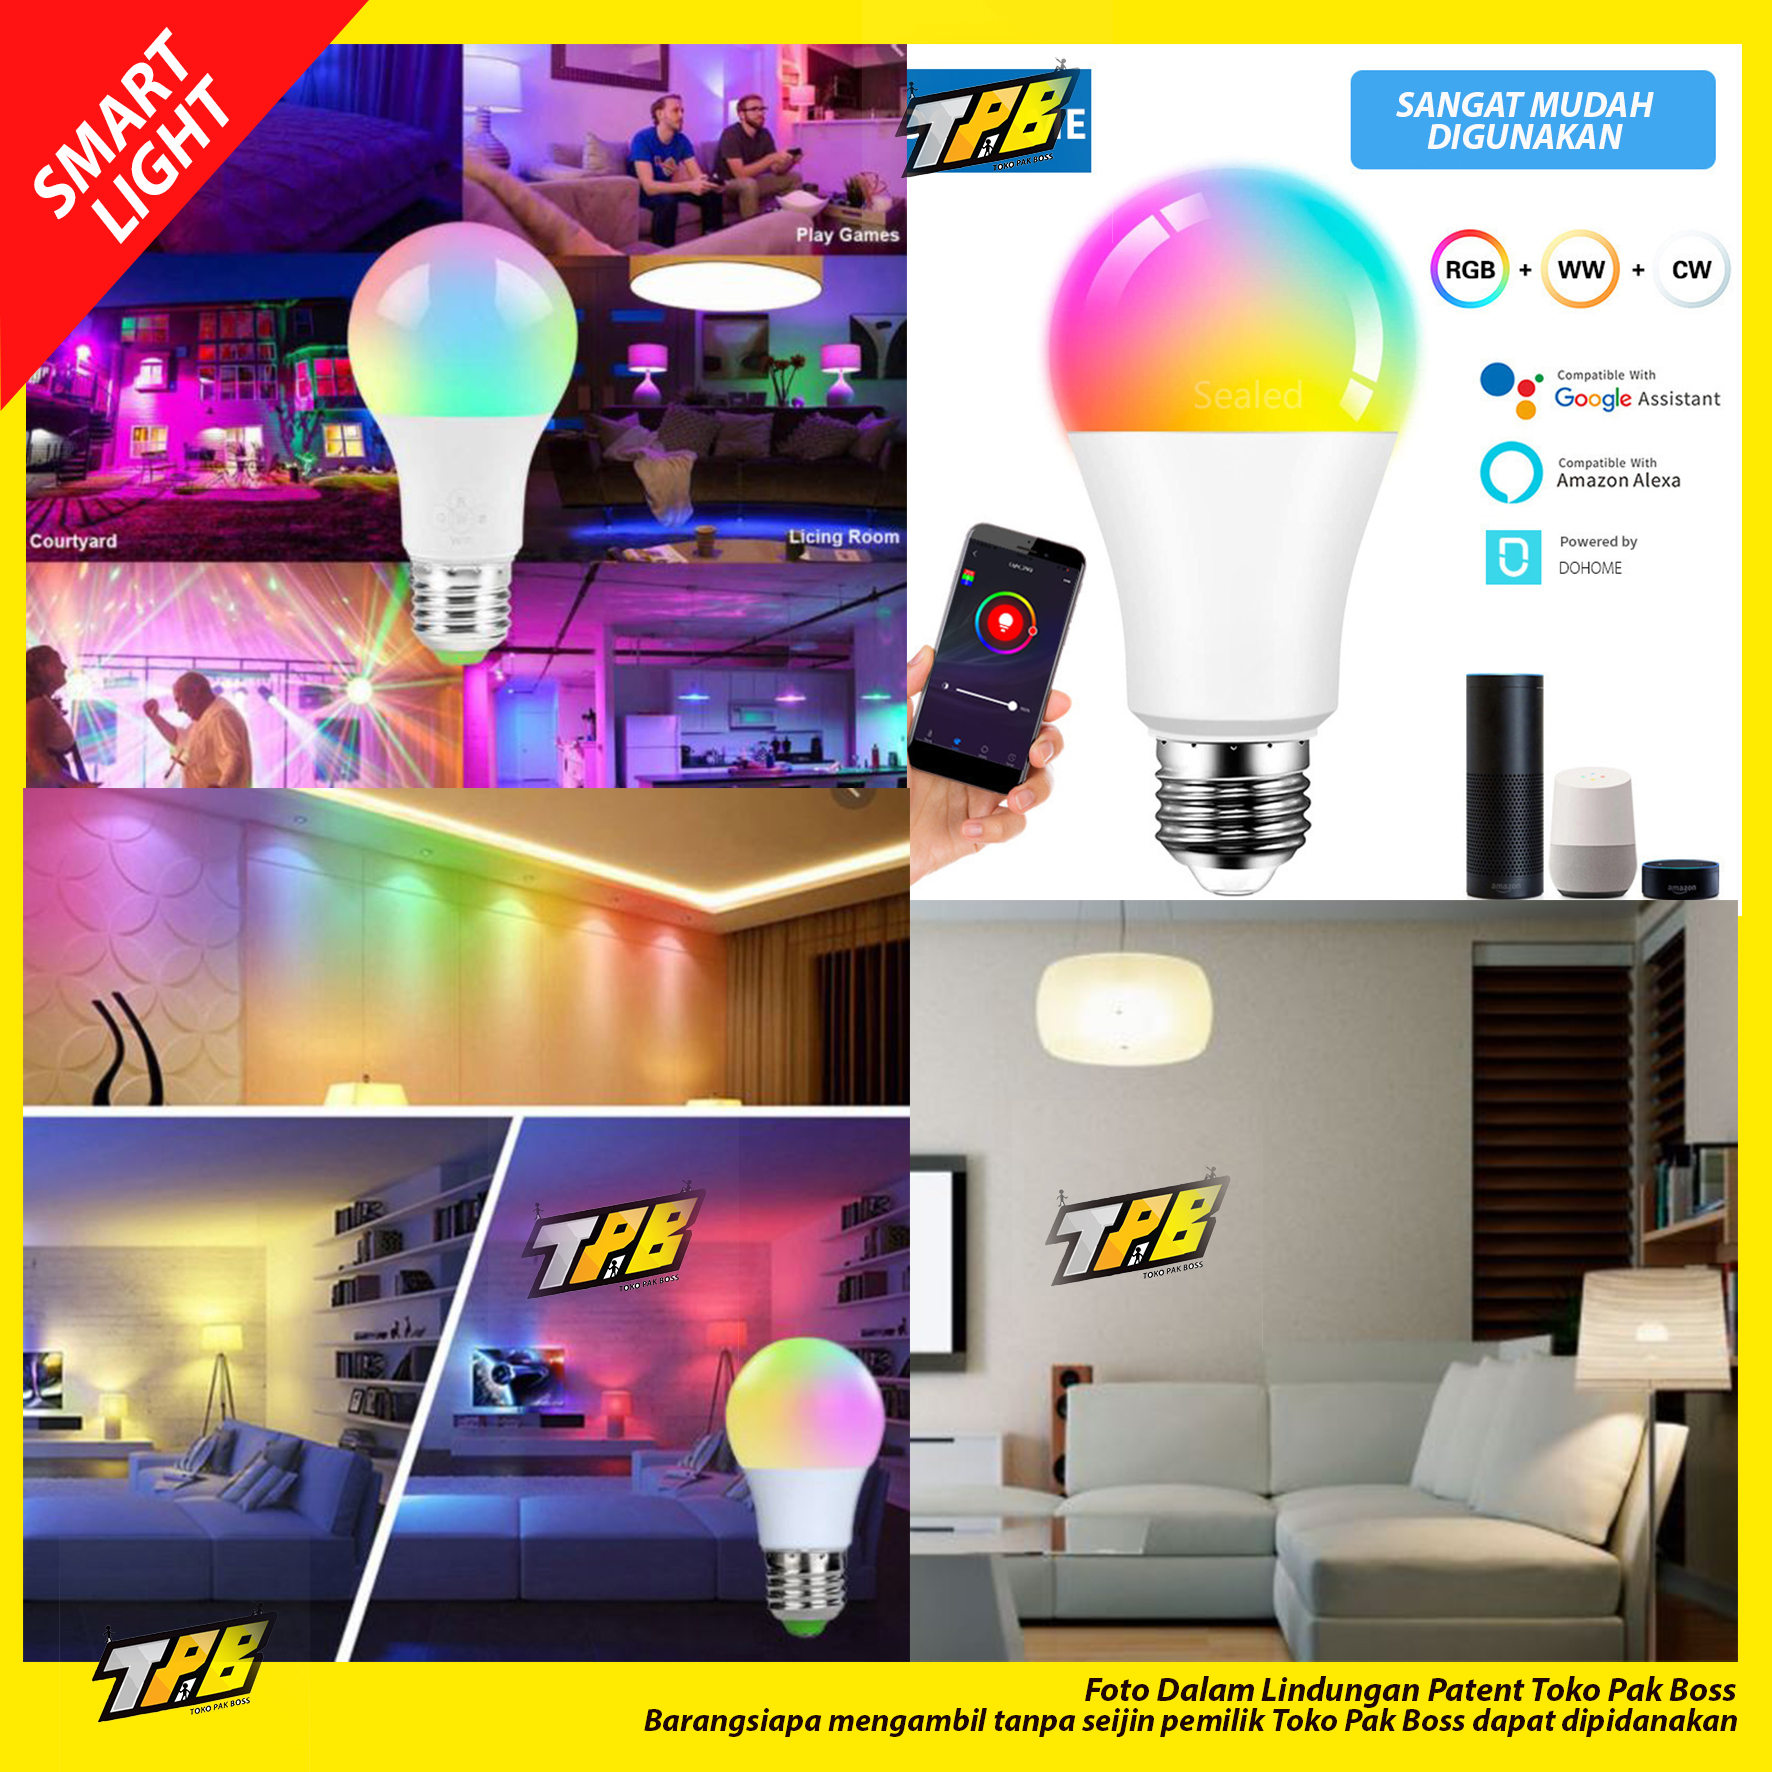 Smart light LED WIFI 9W RGBWW LED Light Bulb ORI bukan shinyoku bardi philips osram IoT For Home Automation light bulb lampu bohlam wifi wireless termurah HEMAT IRIT LISTRIK 9 w 9 watt